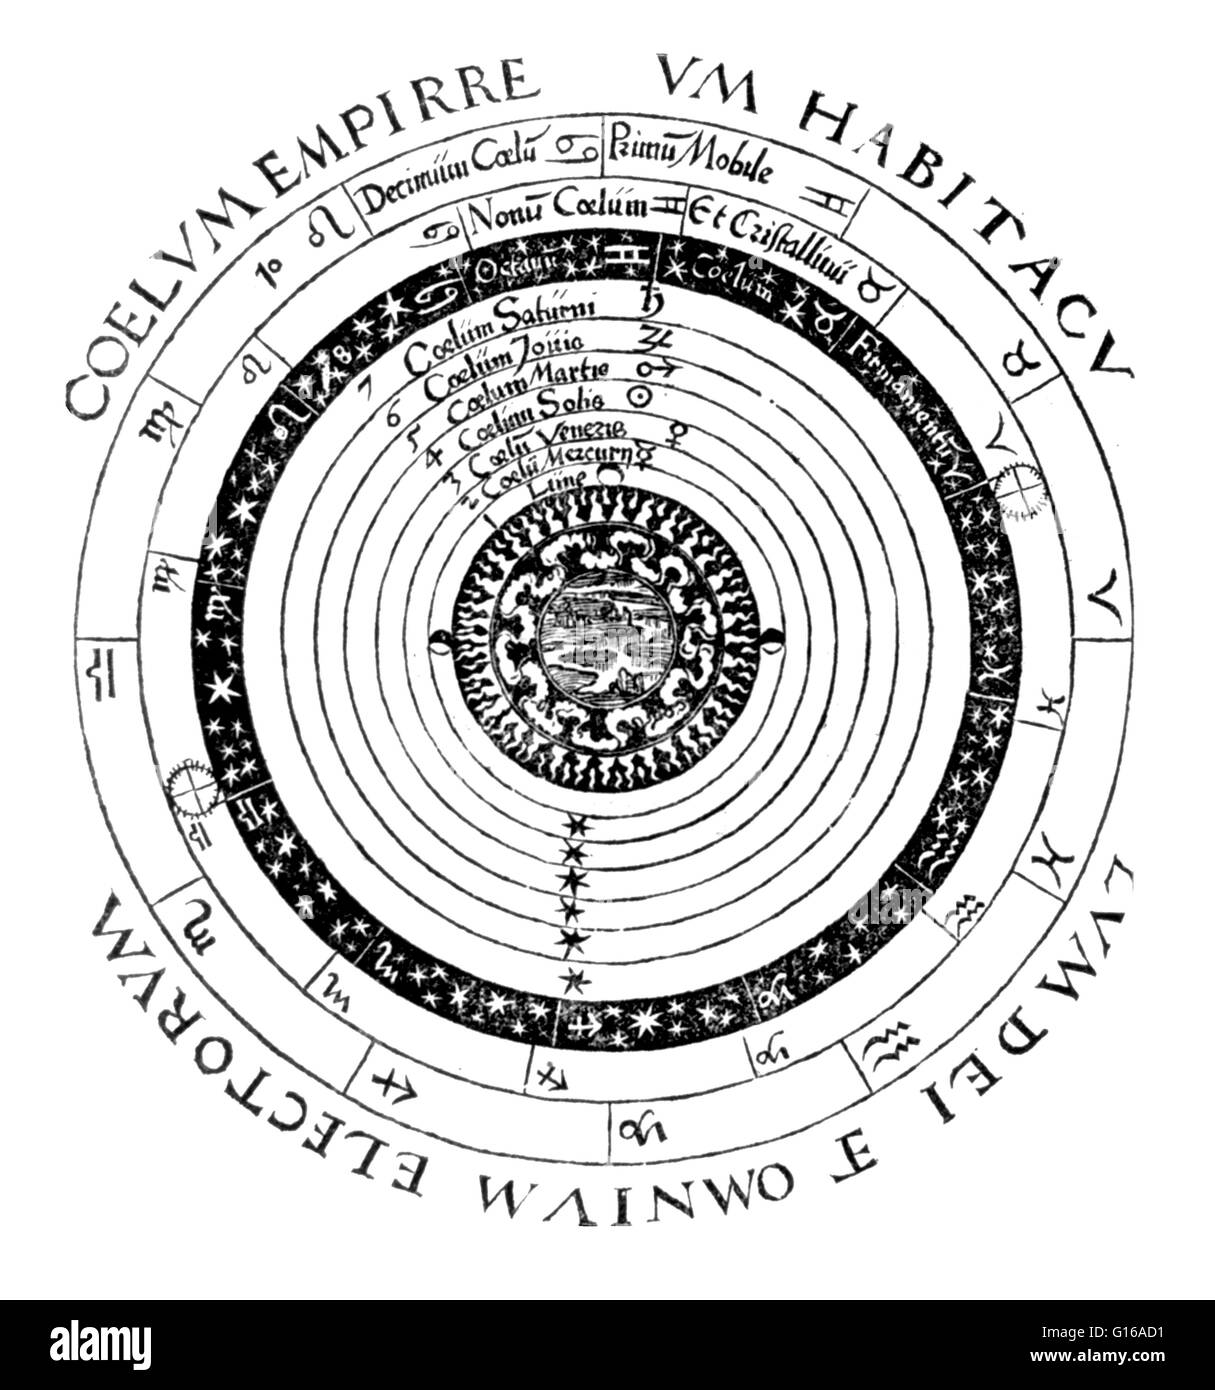 The grafting of Aristotelian theory onto the Christian version of the cosmos, engraving from Peter Apian's Cosmographicus - Stock Image